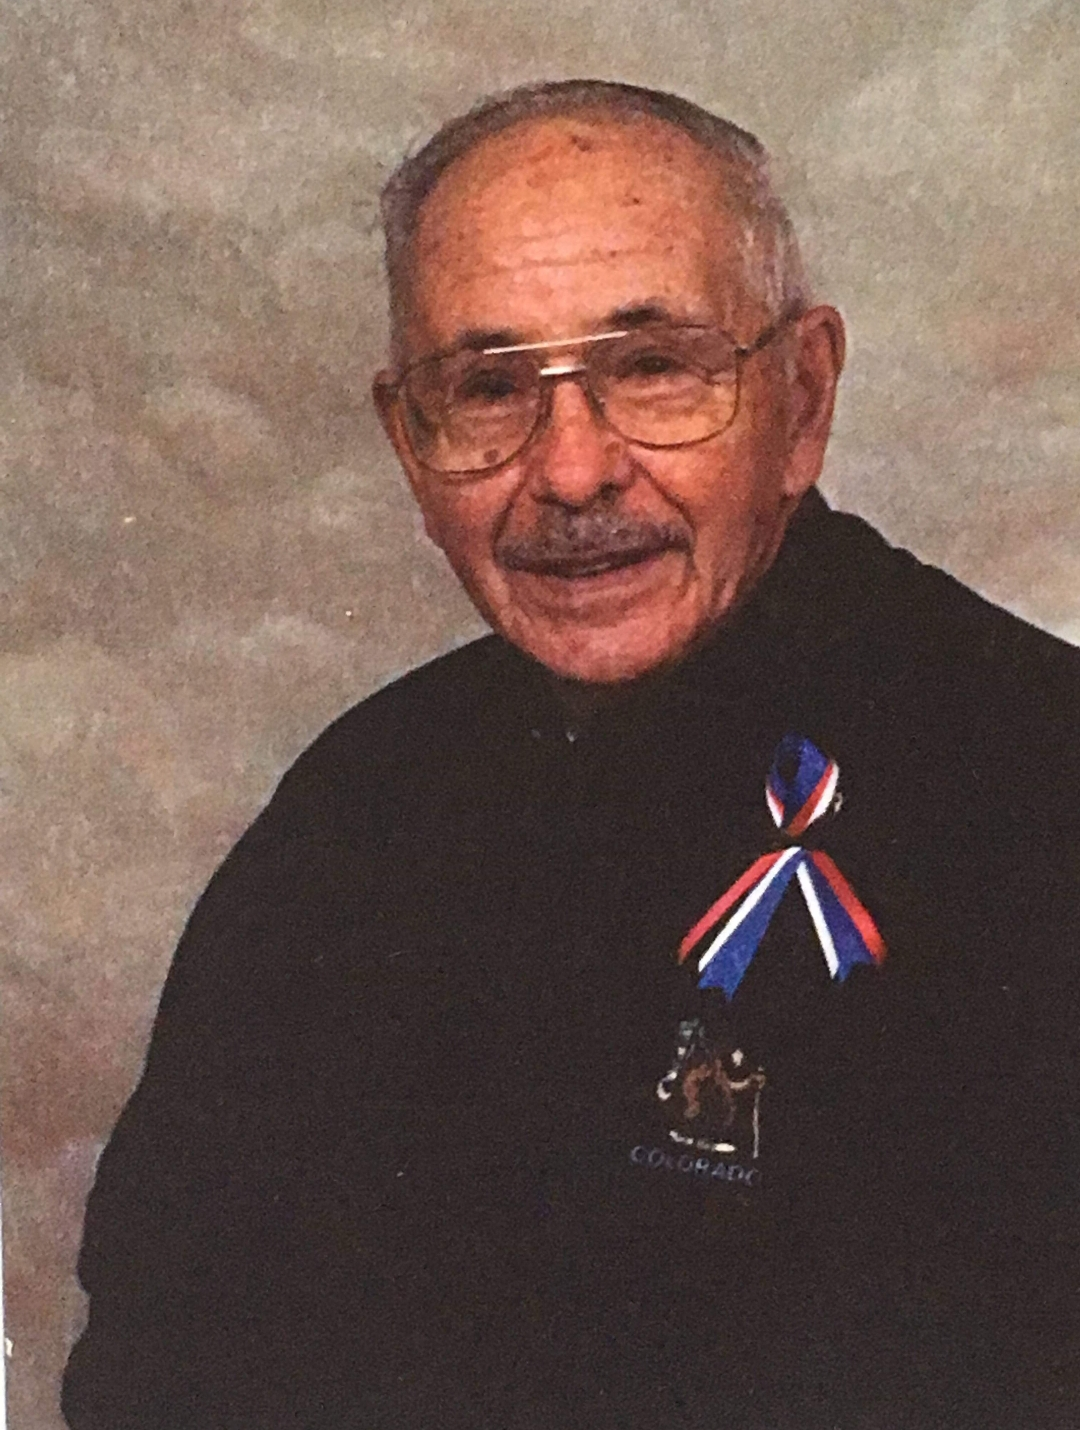 Obituary: Amadeo Gonzales, Dec. 21, 1922 – Feb. 10, 2019